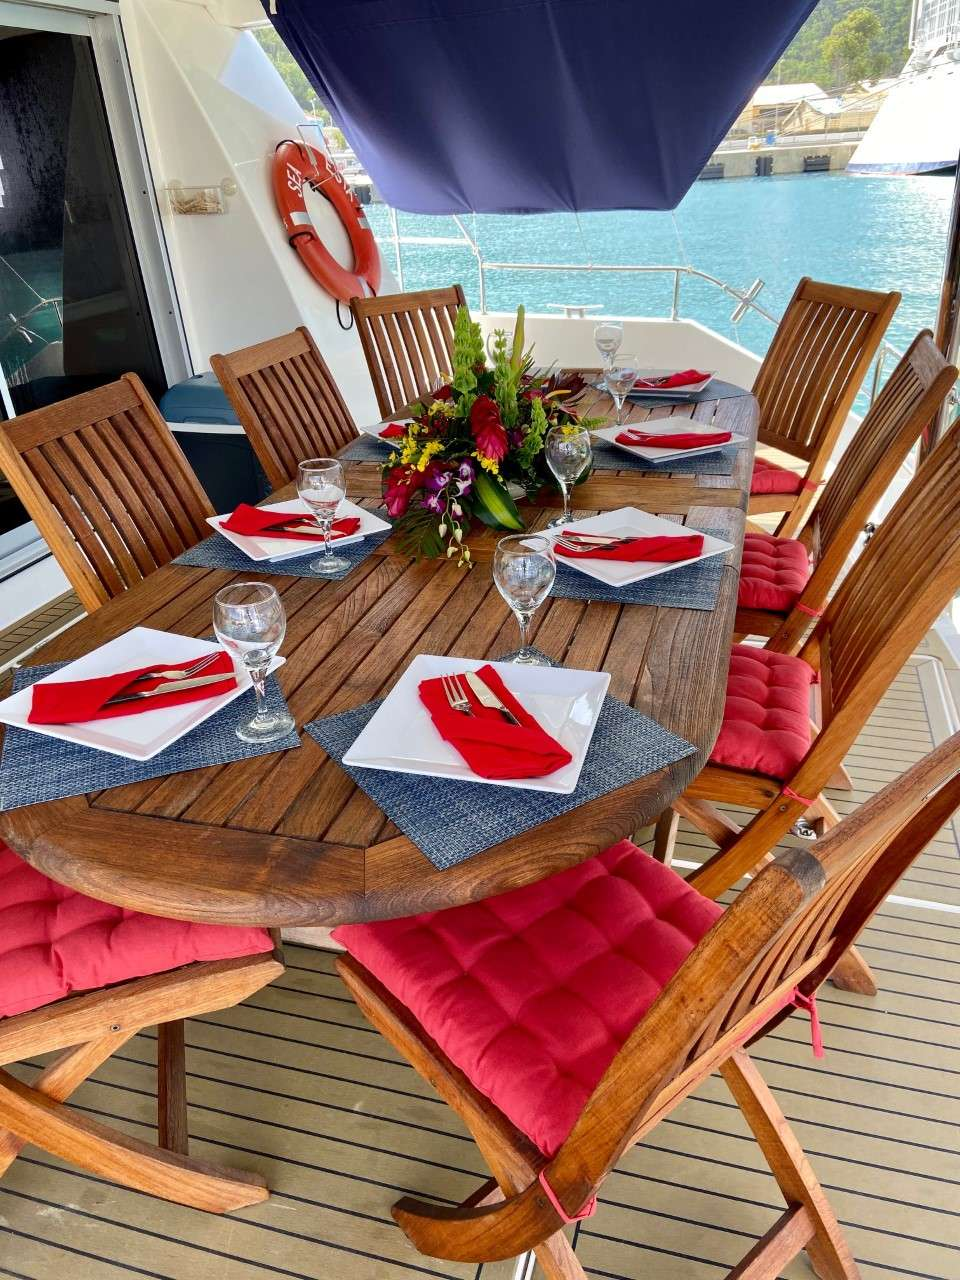 Alfresco dining for up to 10 on the open aft deck.